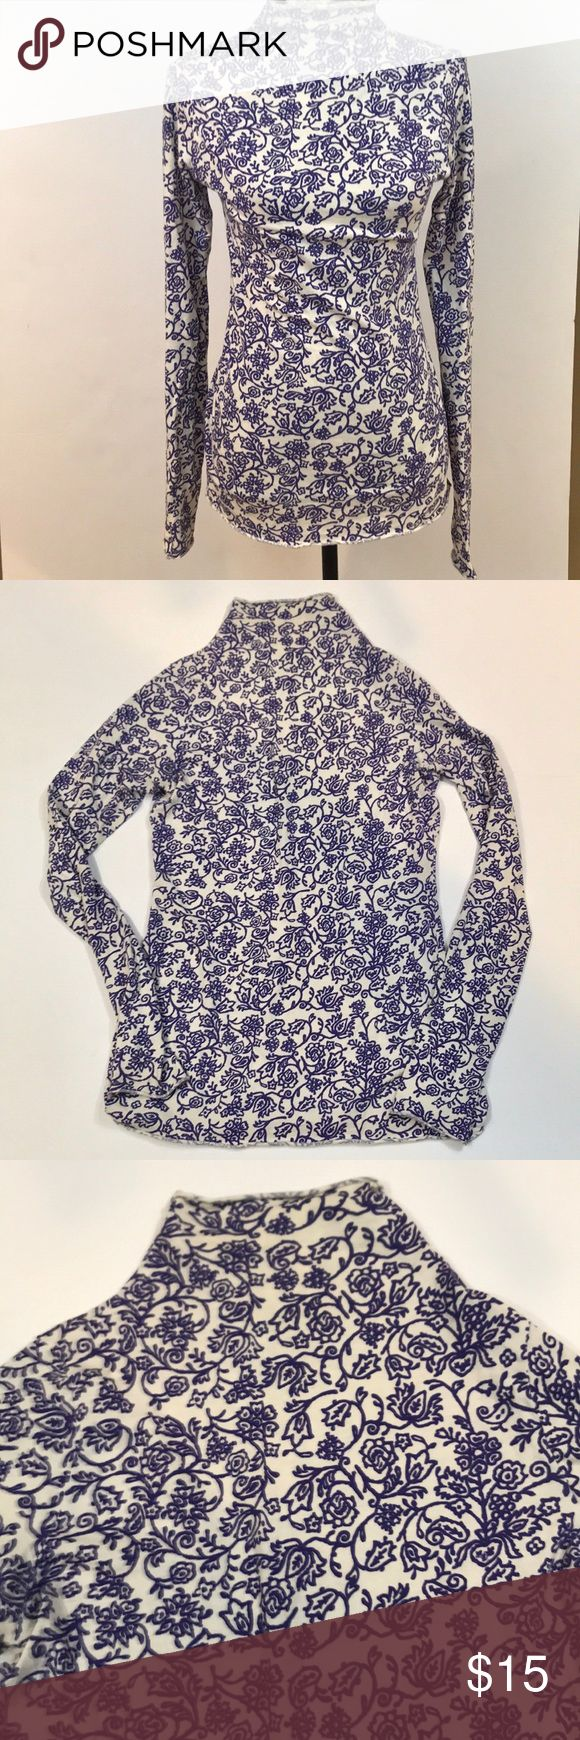 "Velvet By Graham & Spencer Mock Turtleneck Super cute Velvet By Graham & Spencer Mock Turtleneck size medium. Purple Floral design. Excellent preloved condition. Light weight. 100% cotton. 17.5"" from underarm to underarm and 28.5"" long. Velvet by Graham & Spencer Tops"